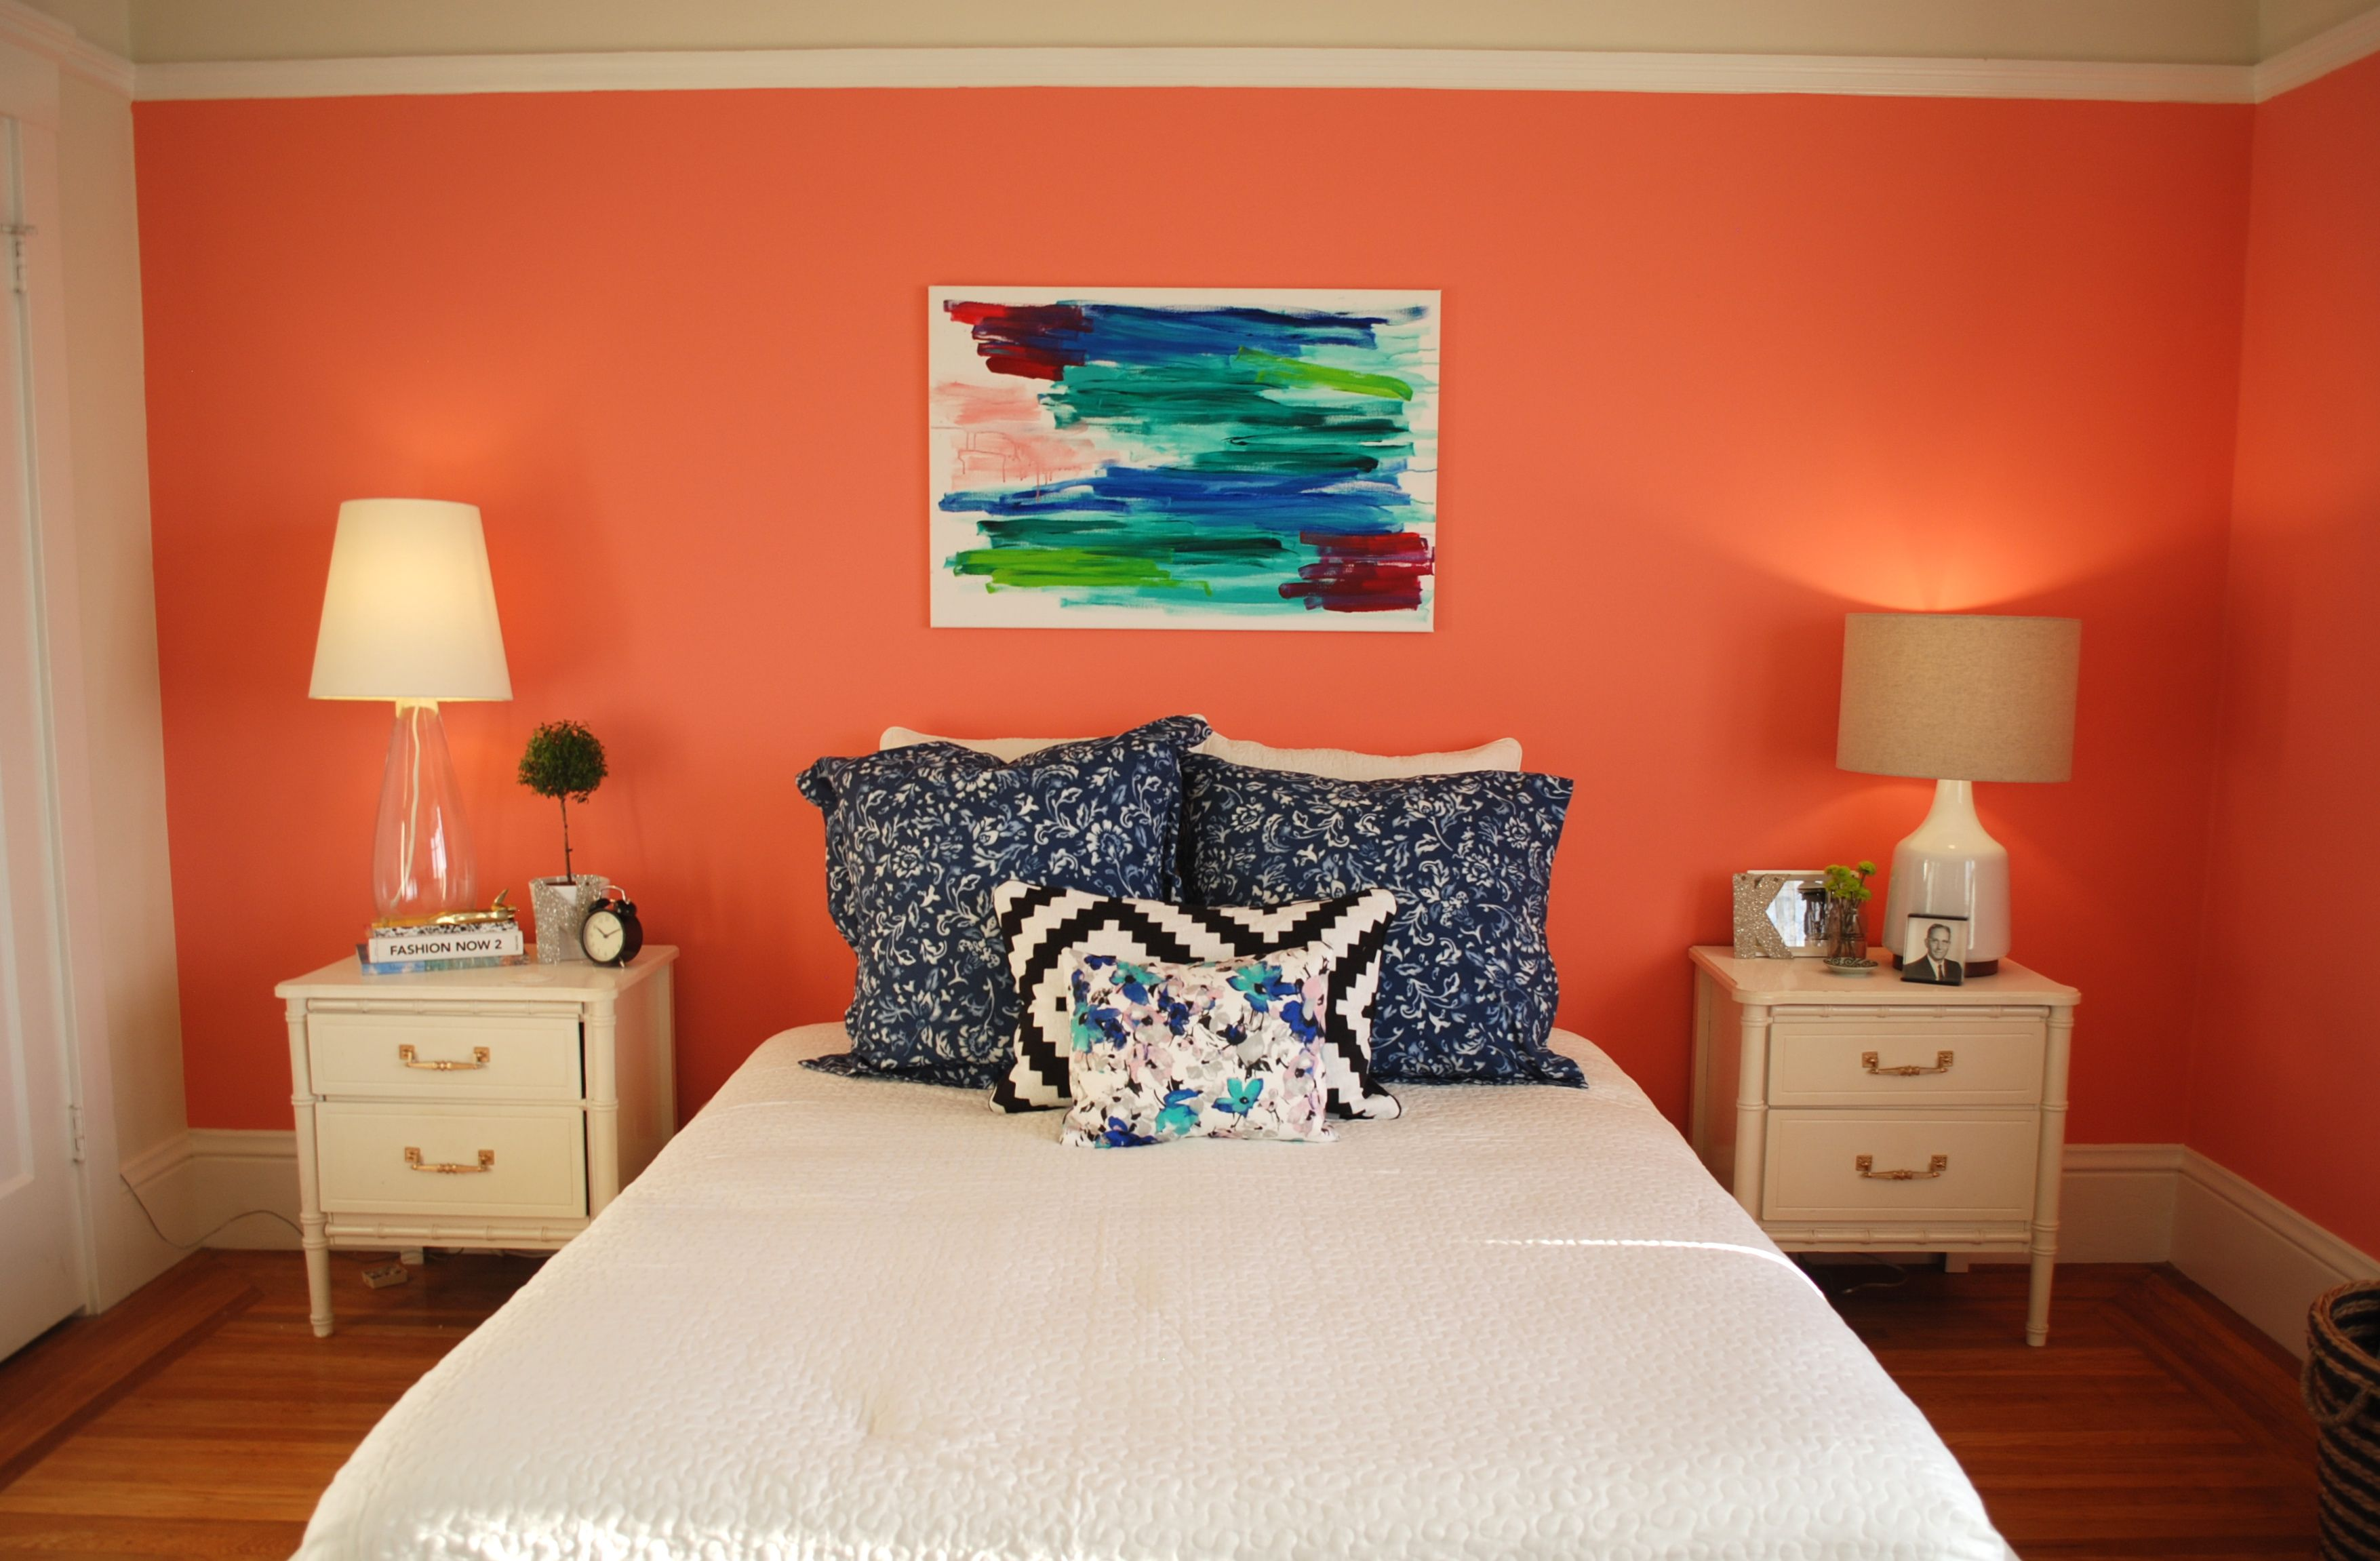 Paint Colors That Match This Apartment Therapy Photo Sw 2802